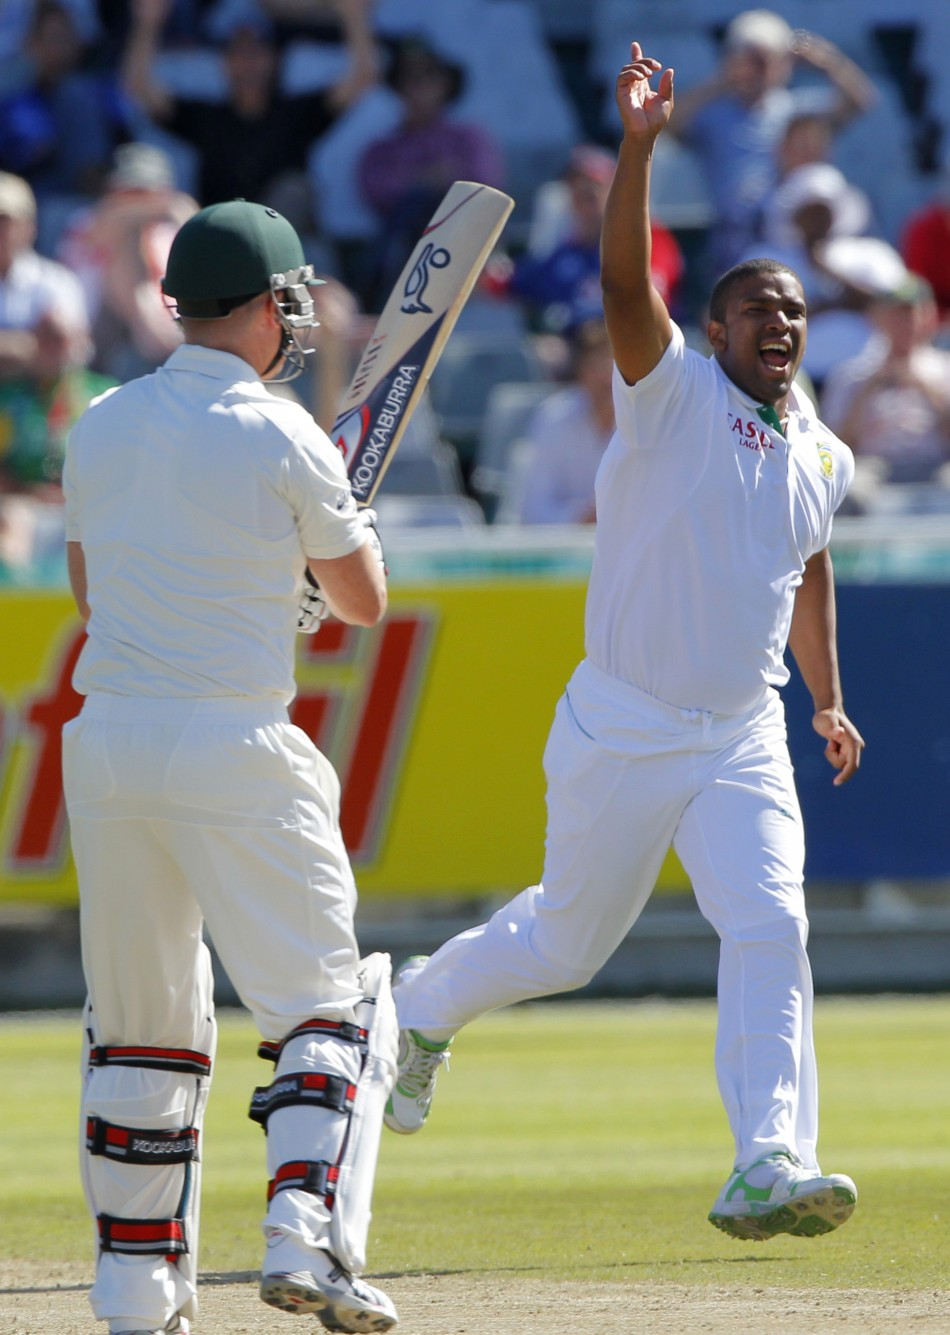 South Africa's Vernon Philander celebrates after taking the wicket of Australia's Brad Haddin during the second day of their first test cricket match in Cape Town.